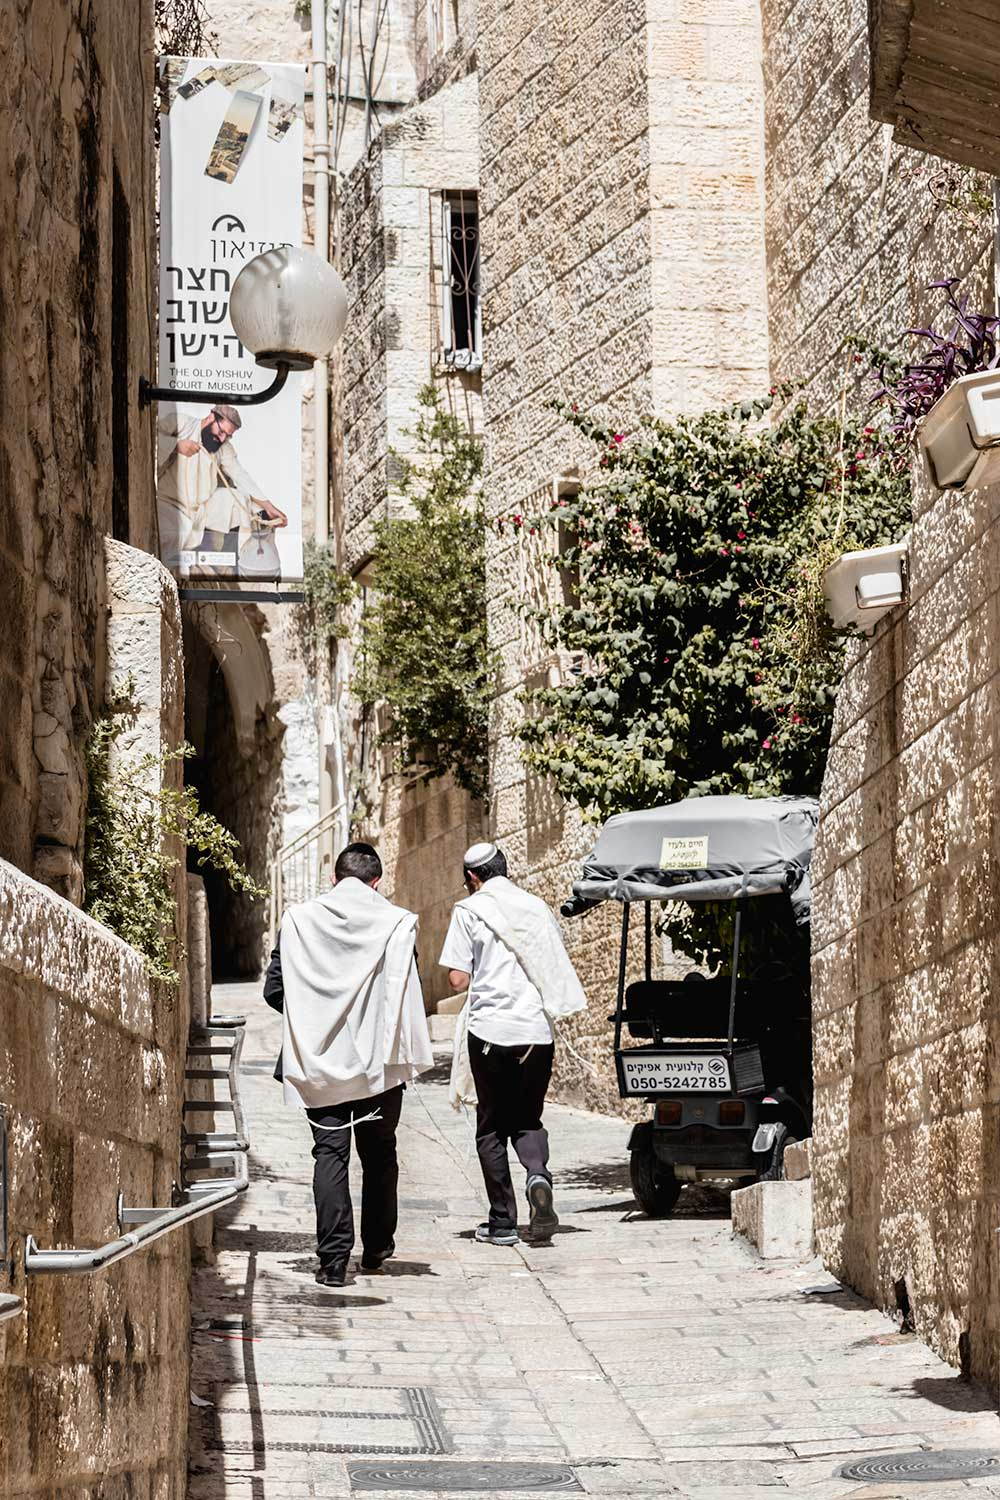 rthodox Jews in the Old City of Jerusalem on our two days in Jerusalem itinerary